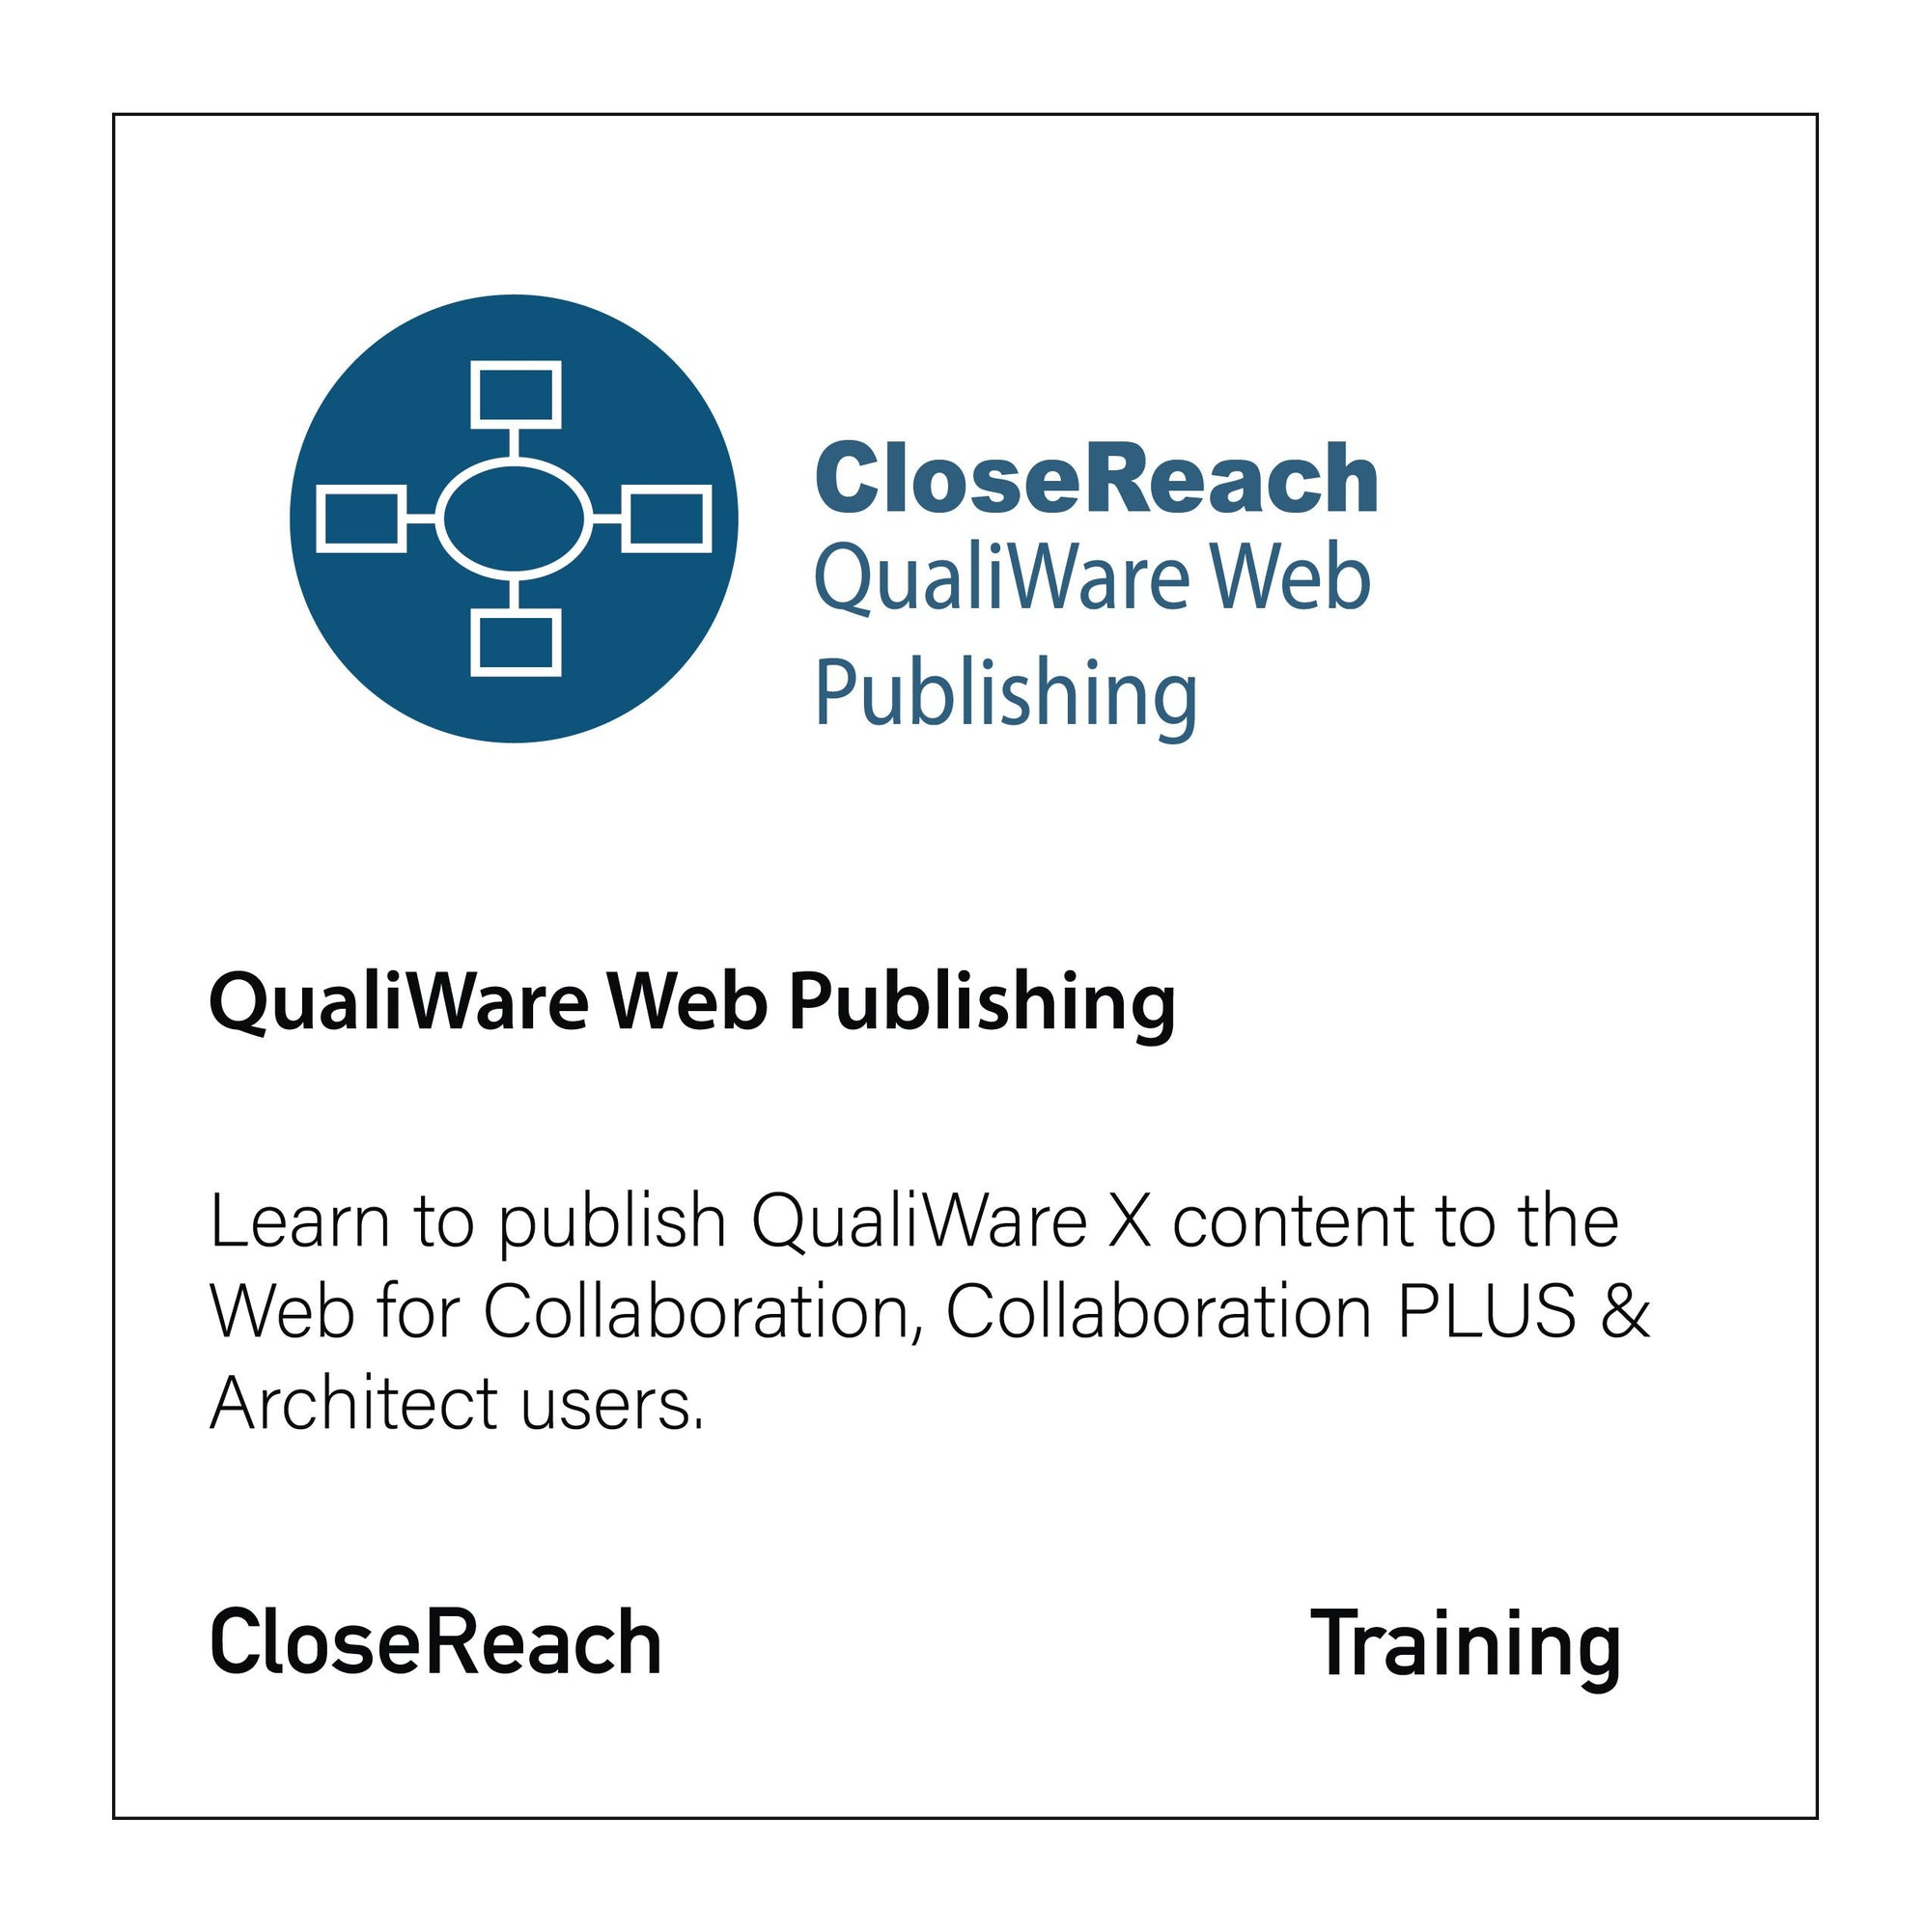 QualiWare Web Publishing - CloseReach Ltd